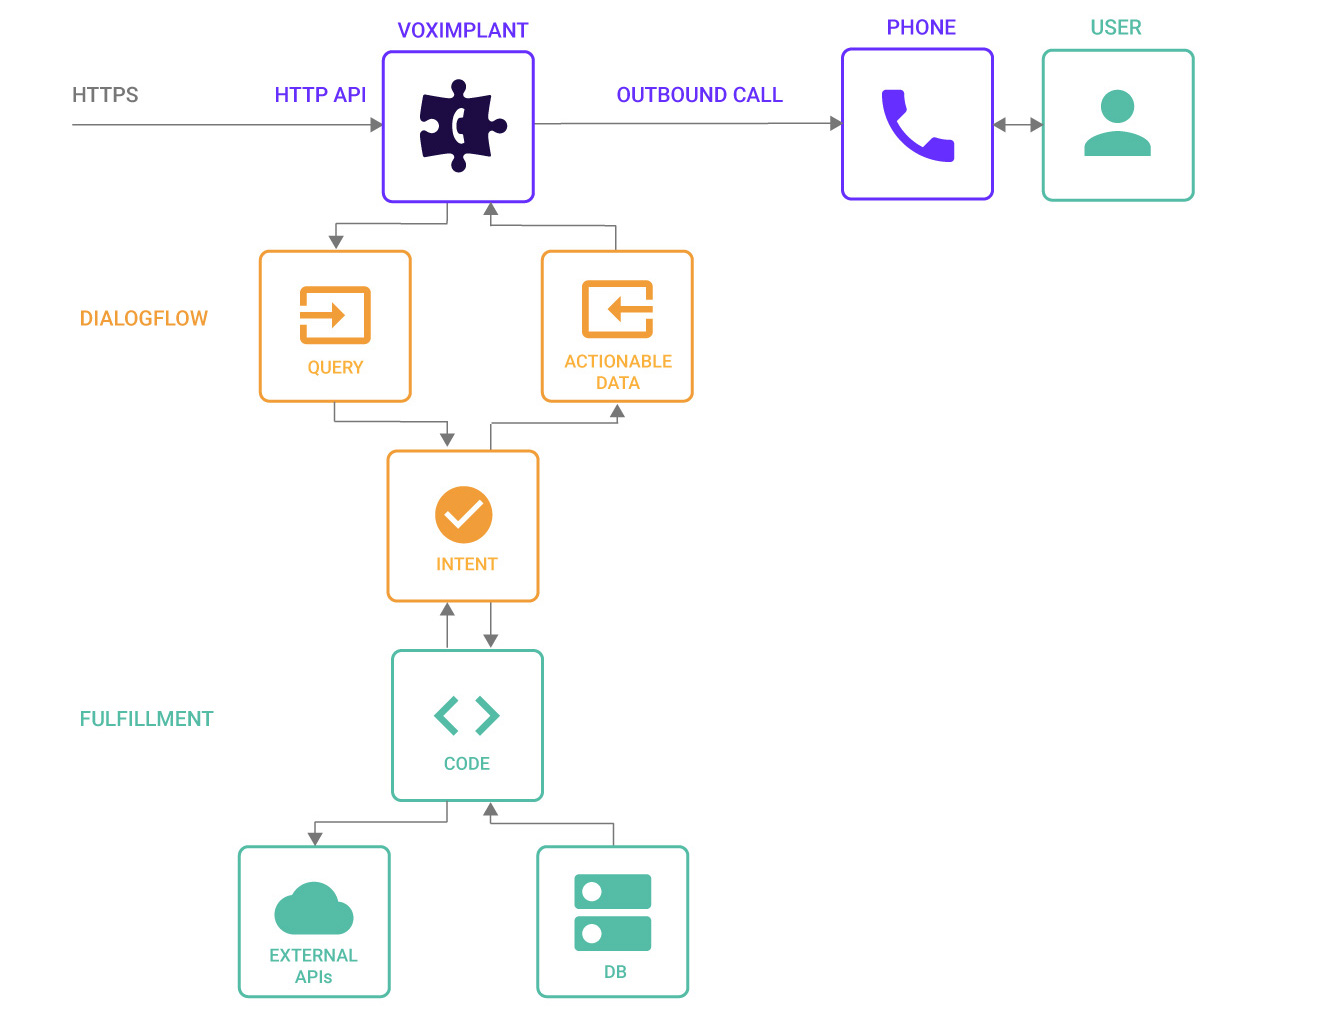 Connecting Dialogflow agent to outbound calls